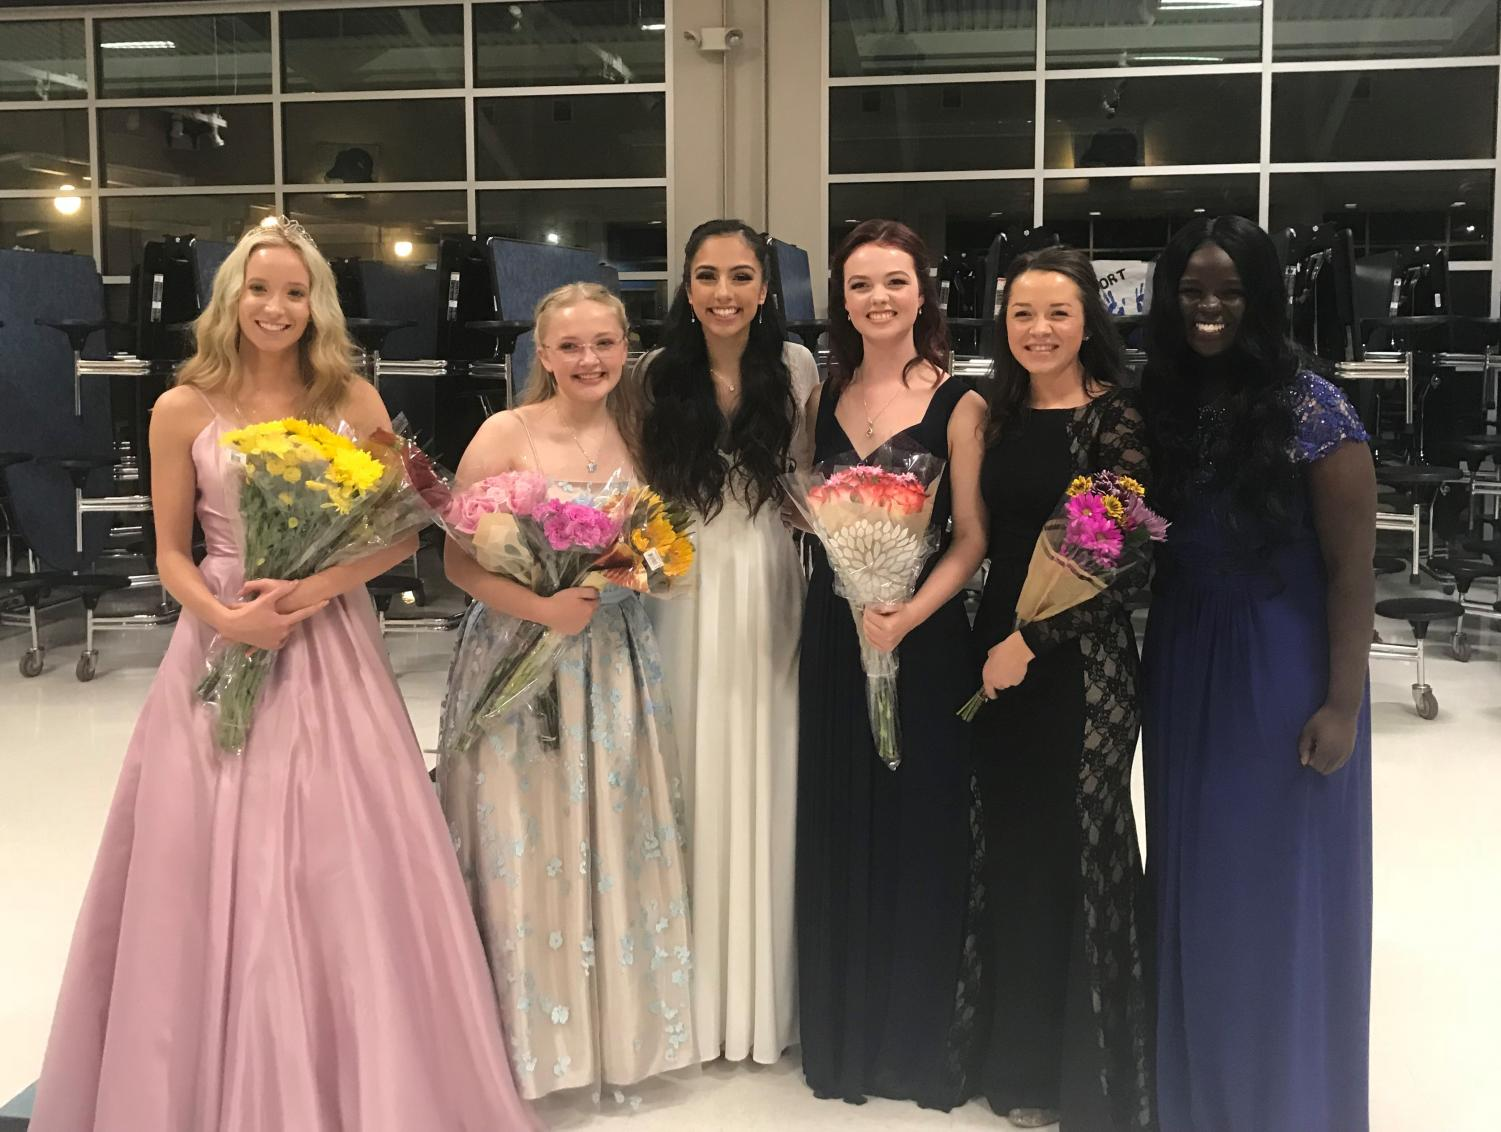 Haley Beyer, Emilie Svensson, Brennah Llanos, Sabrina Engberg, Aidan Moeck, and Miriam Kayango after the coronation.